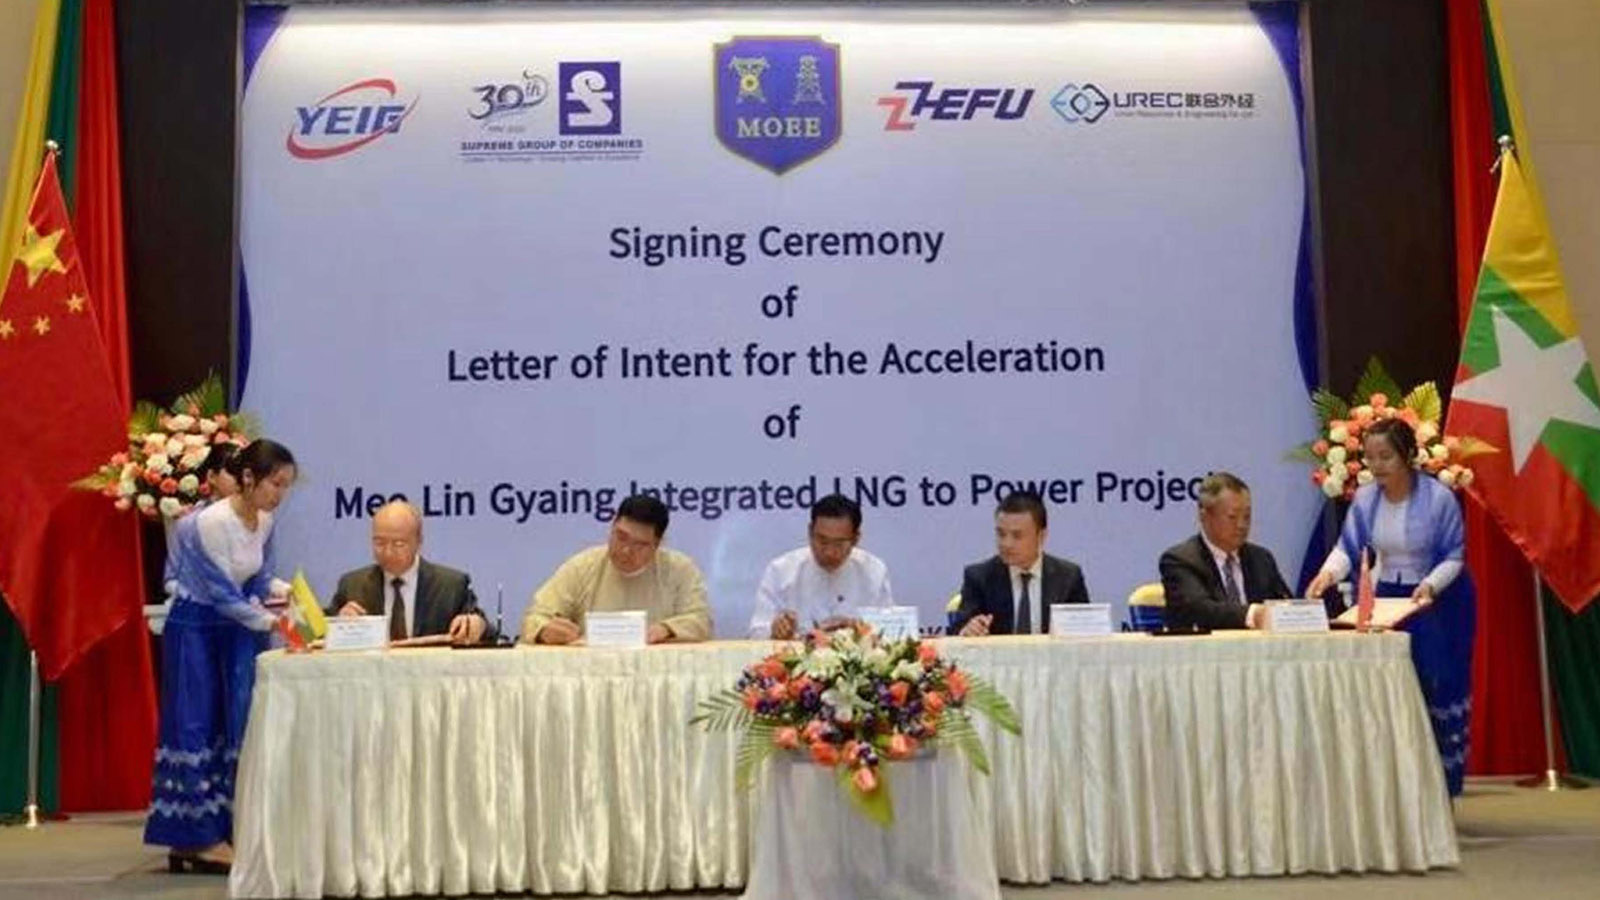 A signing ceremony of Letter of Intent for the Acceleration of Mee Lin Gyaing Integrated LNG to Power Plant held in Nay Pyi Taw on 17 January.Photo: MNA